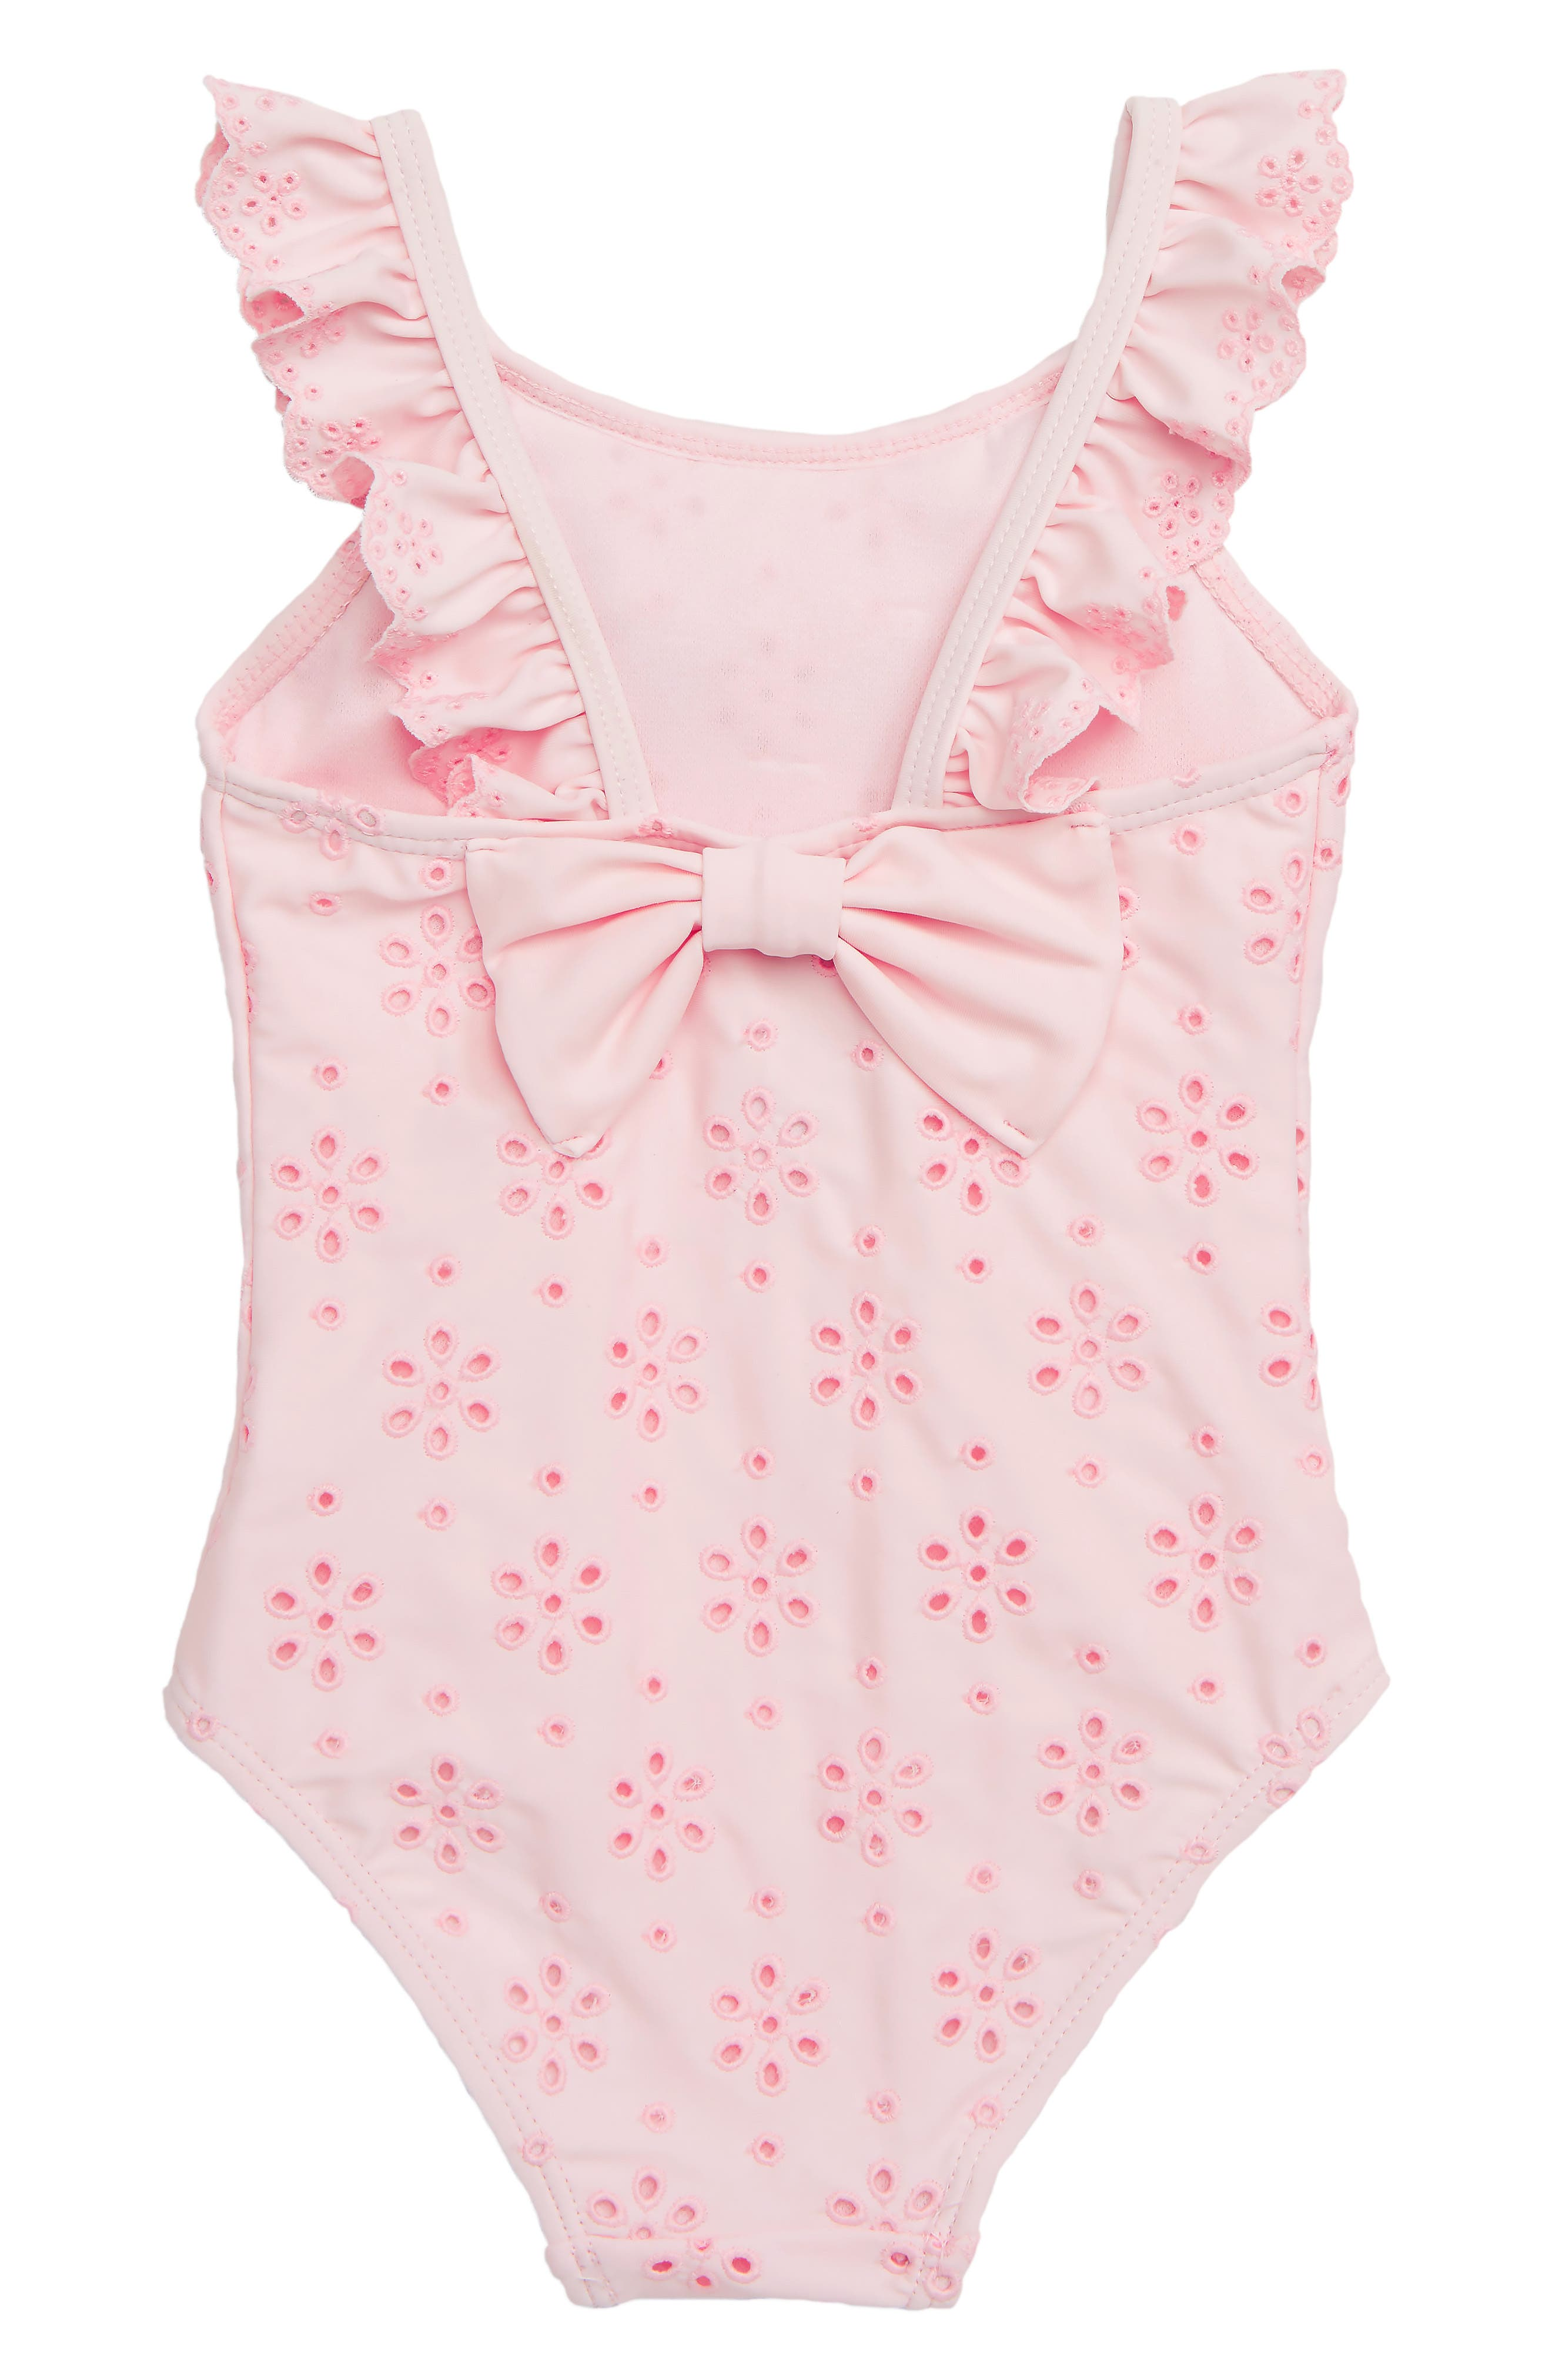 Ruffle Eyelet One-Piece Swimsuit,                             Alternate thumbnail 2, color,                             PINK